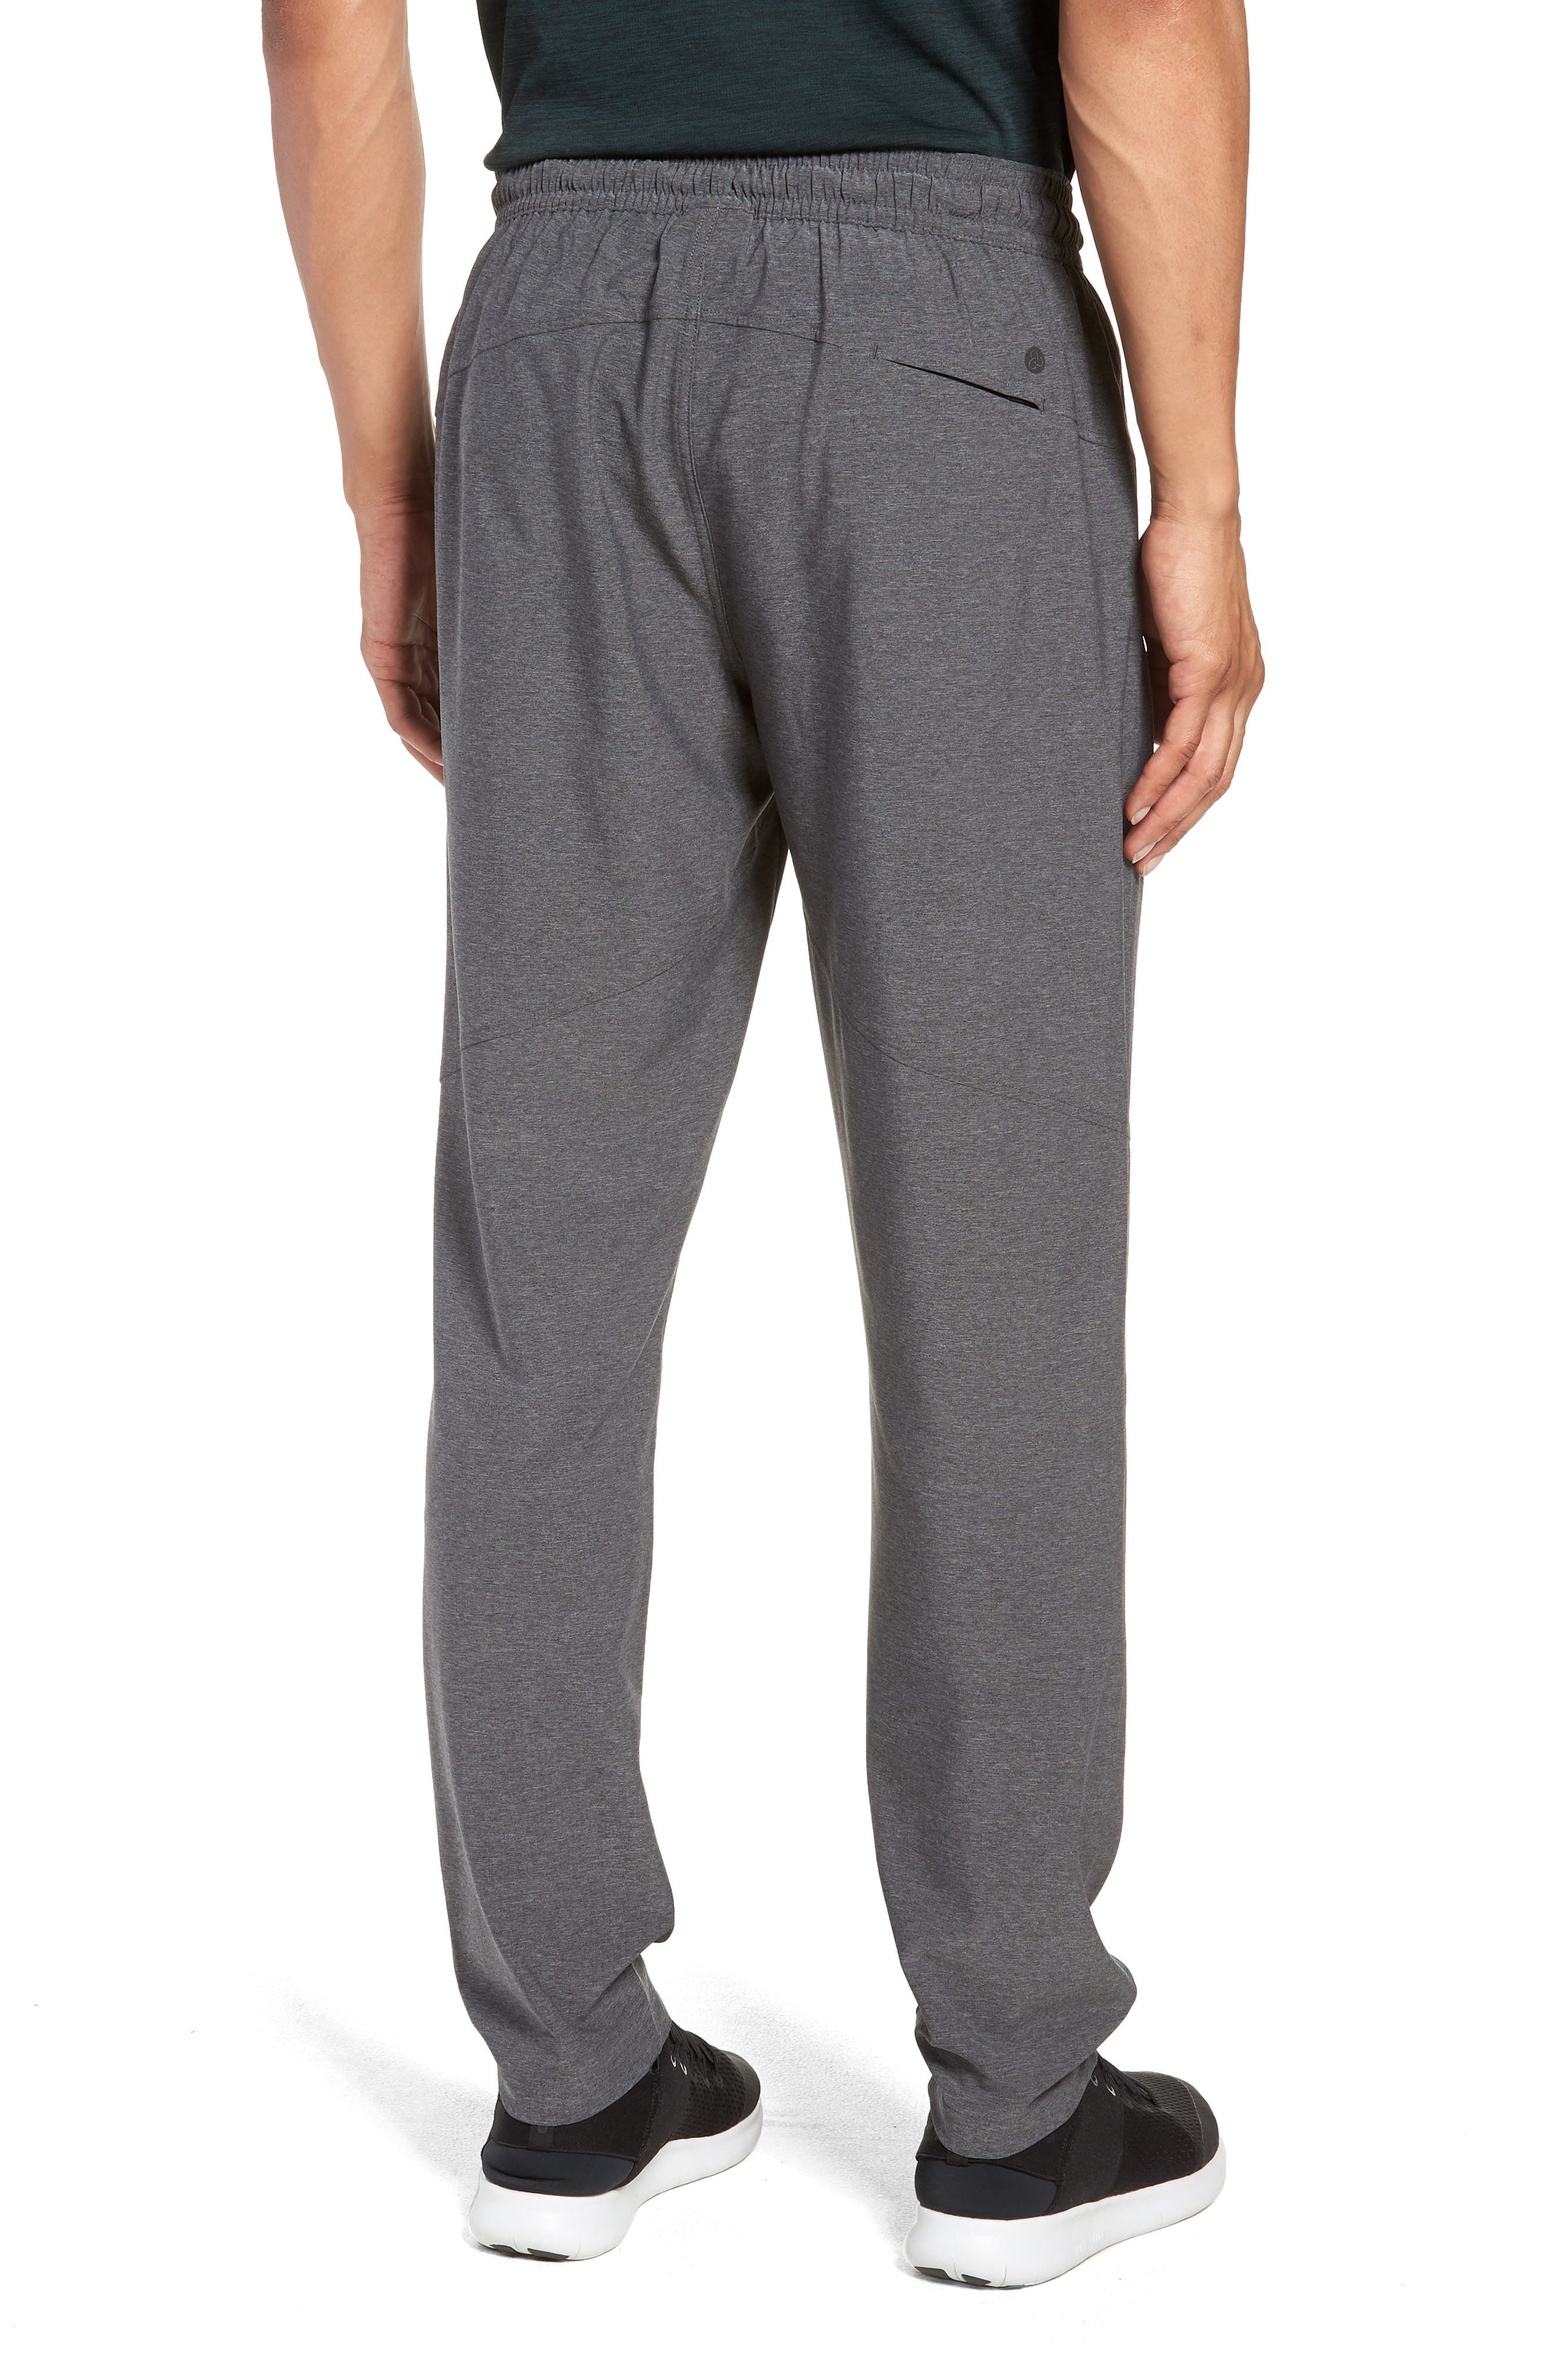 ZELLA, Tapered Stretch Track Pants, Alternate thumbnail 2, color, GREY OBSIDIAN MELANGE